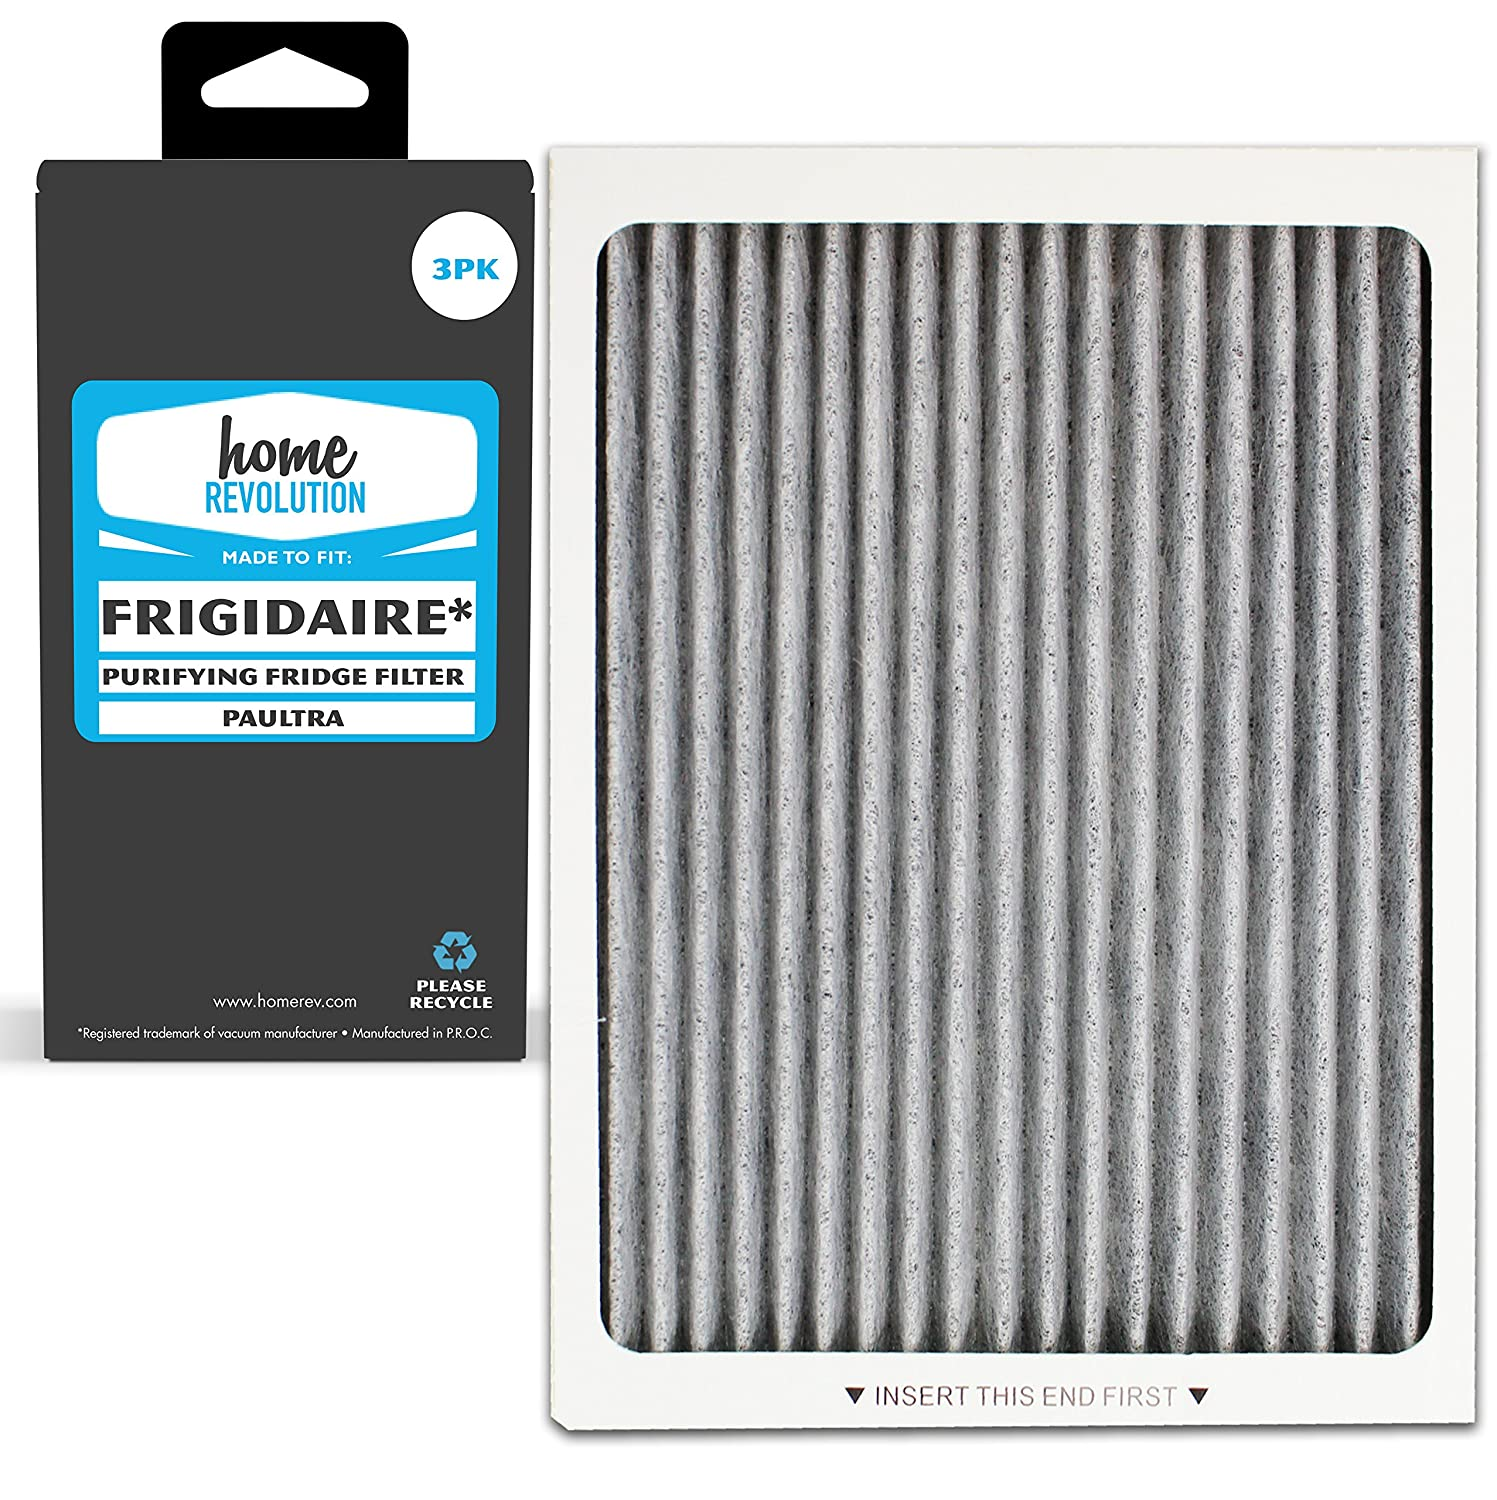 3 Home Revolution Replacement Refrigerator Air Filters, Fits Frigidaire PAULTRA Pure Air Ultra & Electrolux EAFCBF